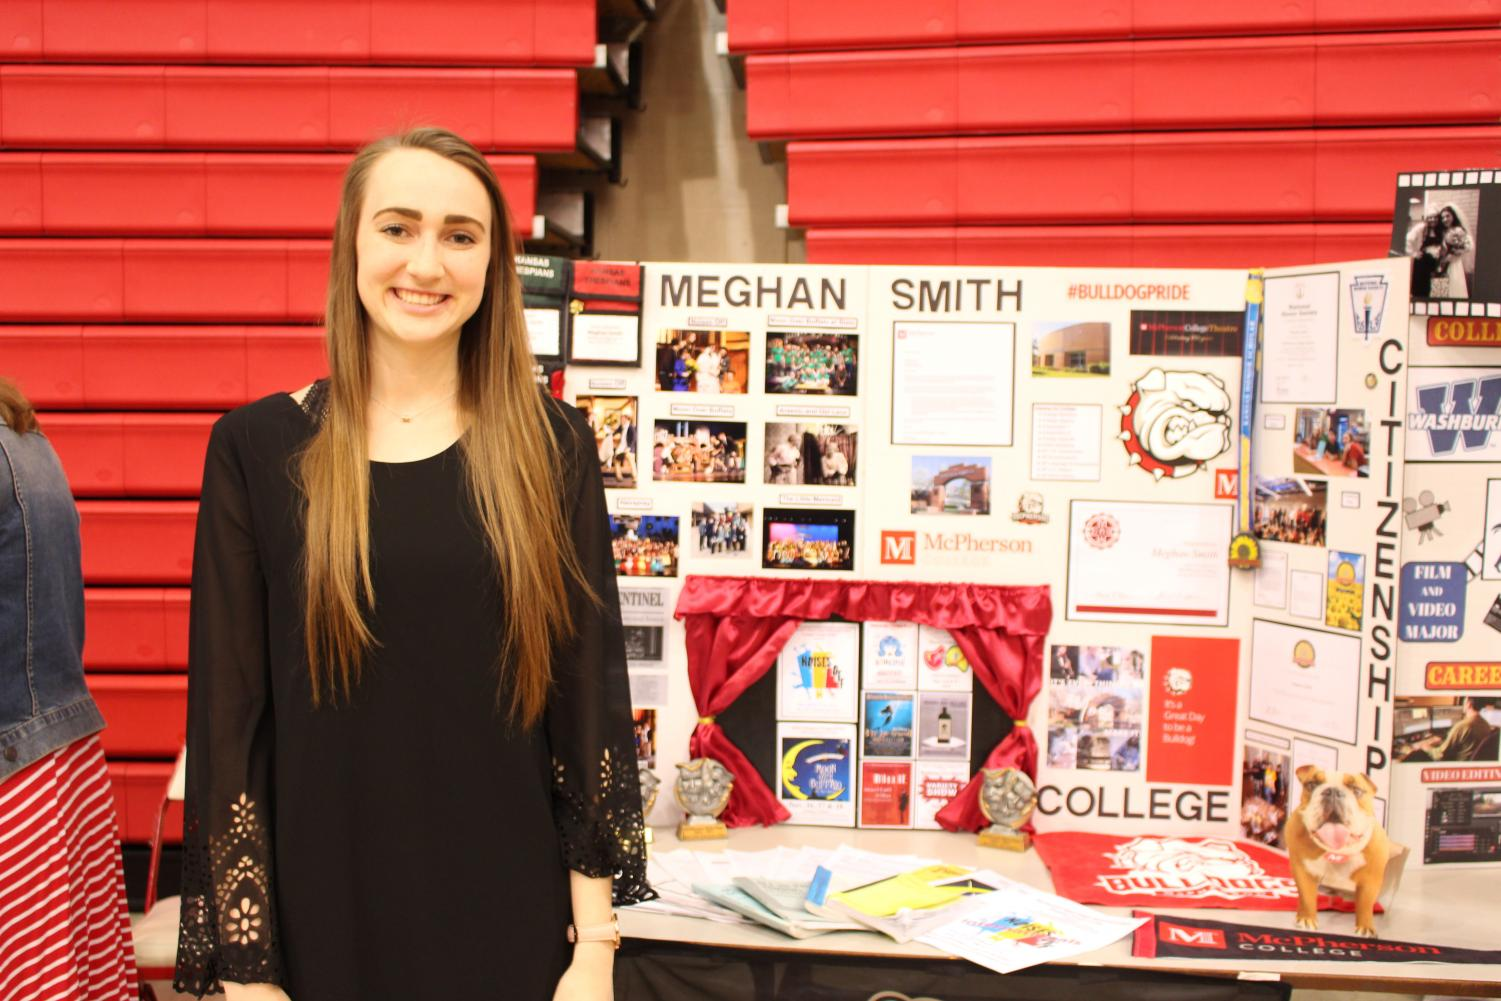 Meghan+Smith+showcases+her+many+acomplisments+and+where+she+is+going+to+college.+